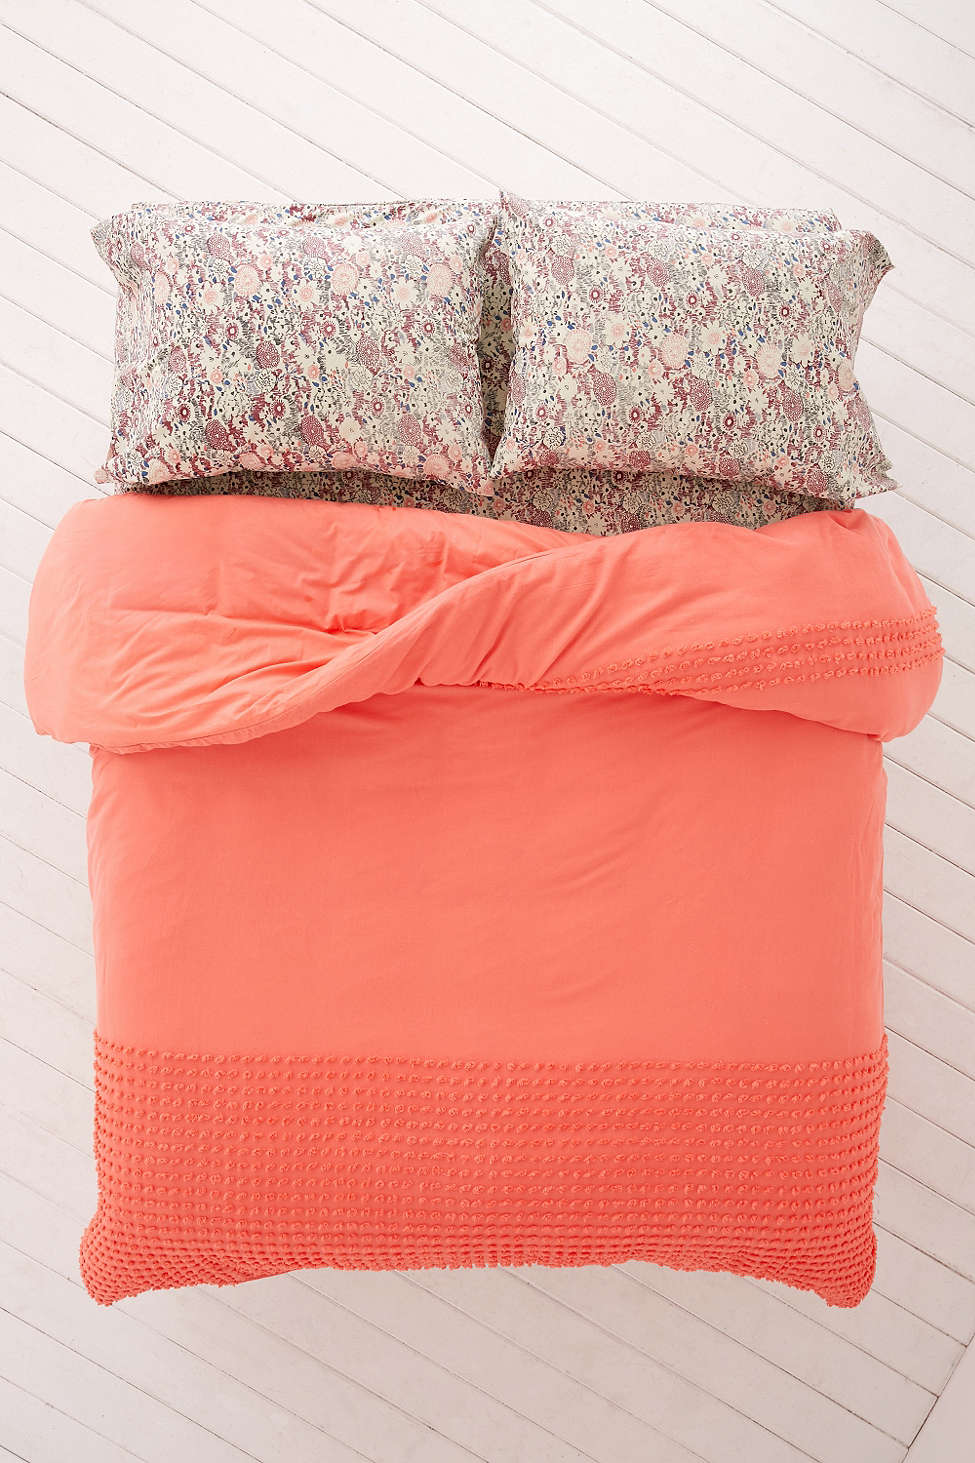 Shopping For Bed Sheets Helpful Tips And Pointers